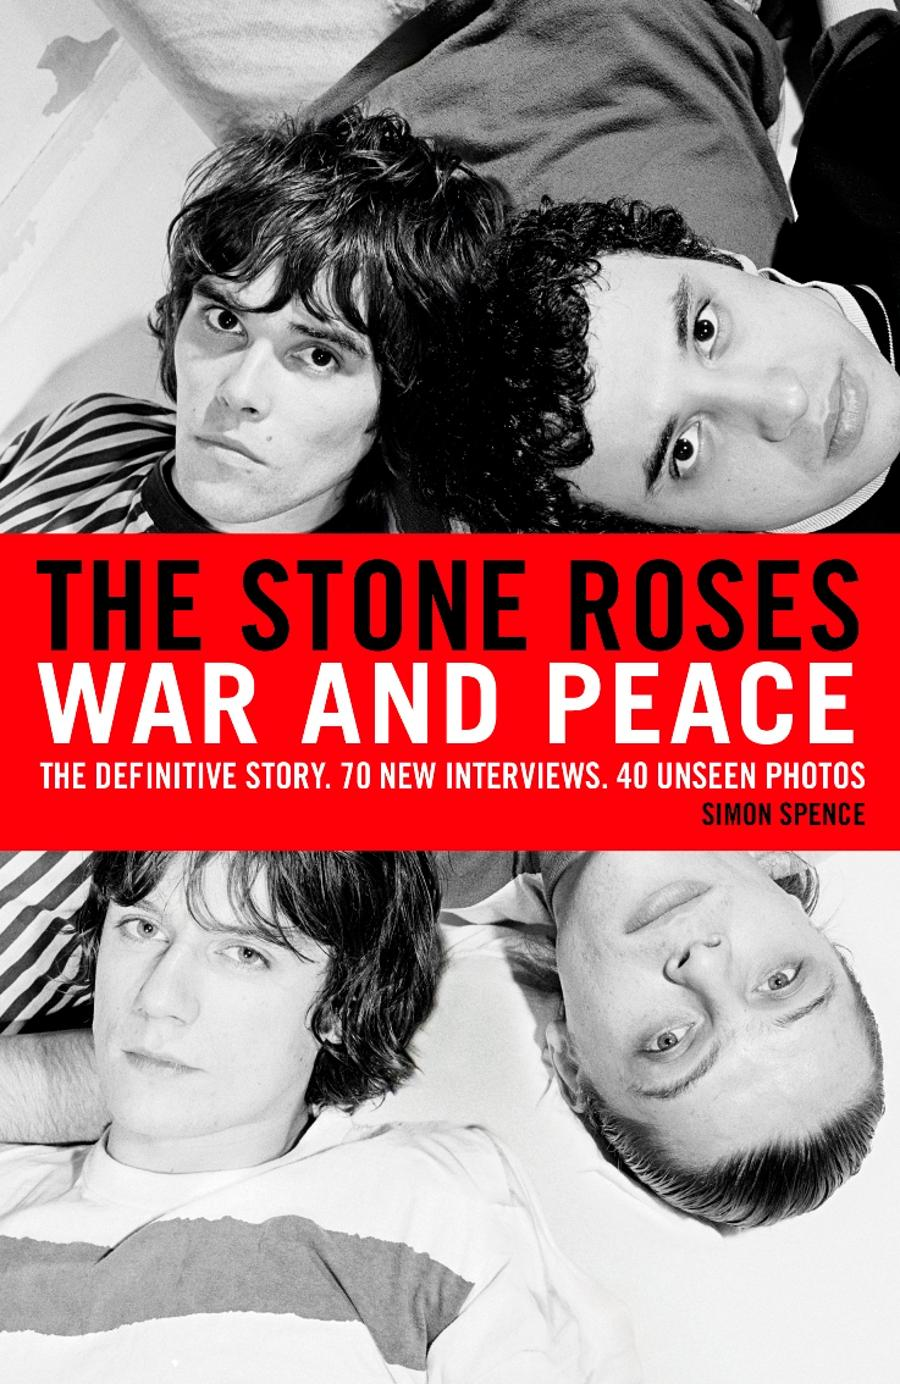 Book Review: The Stone Roses War And Peace, By Simon Spence